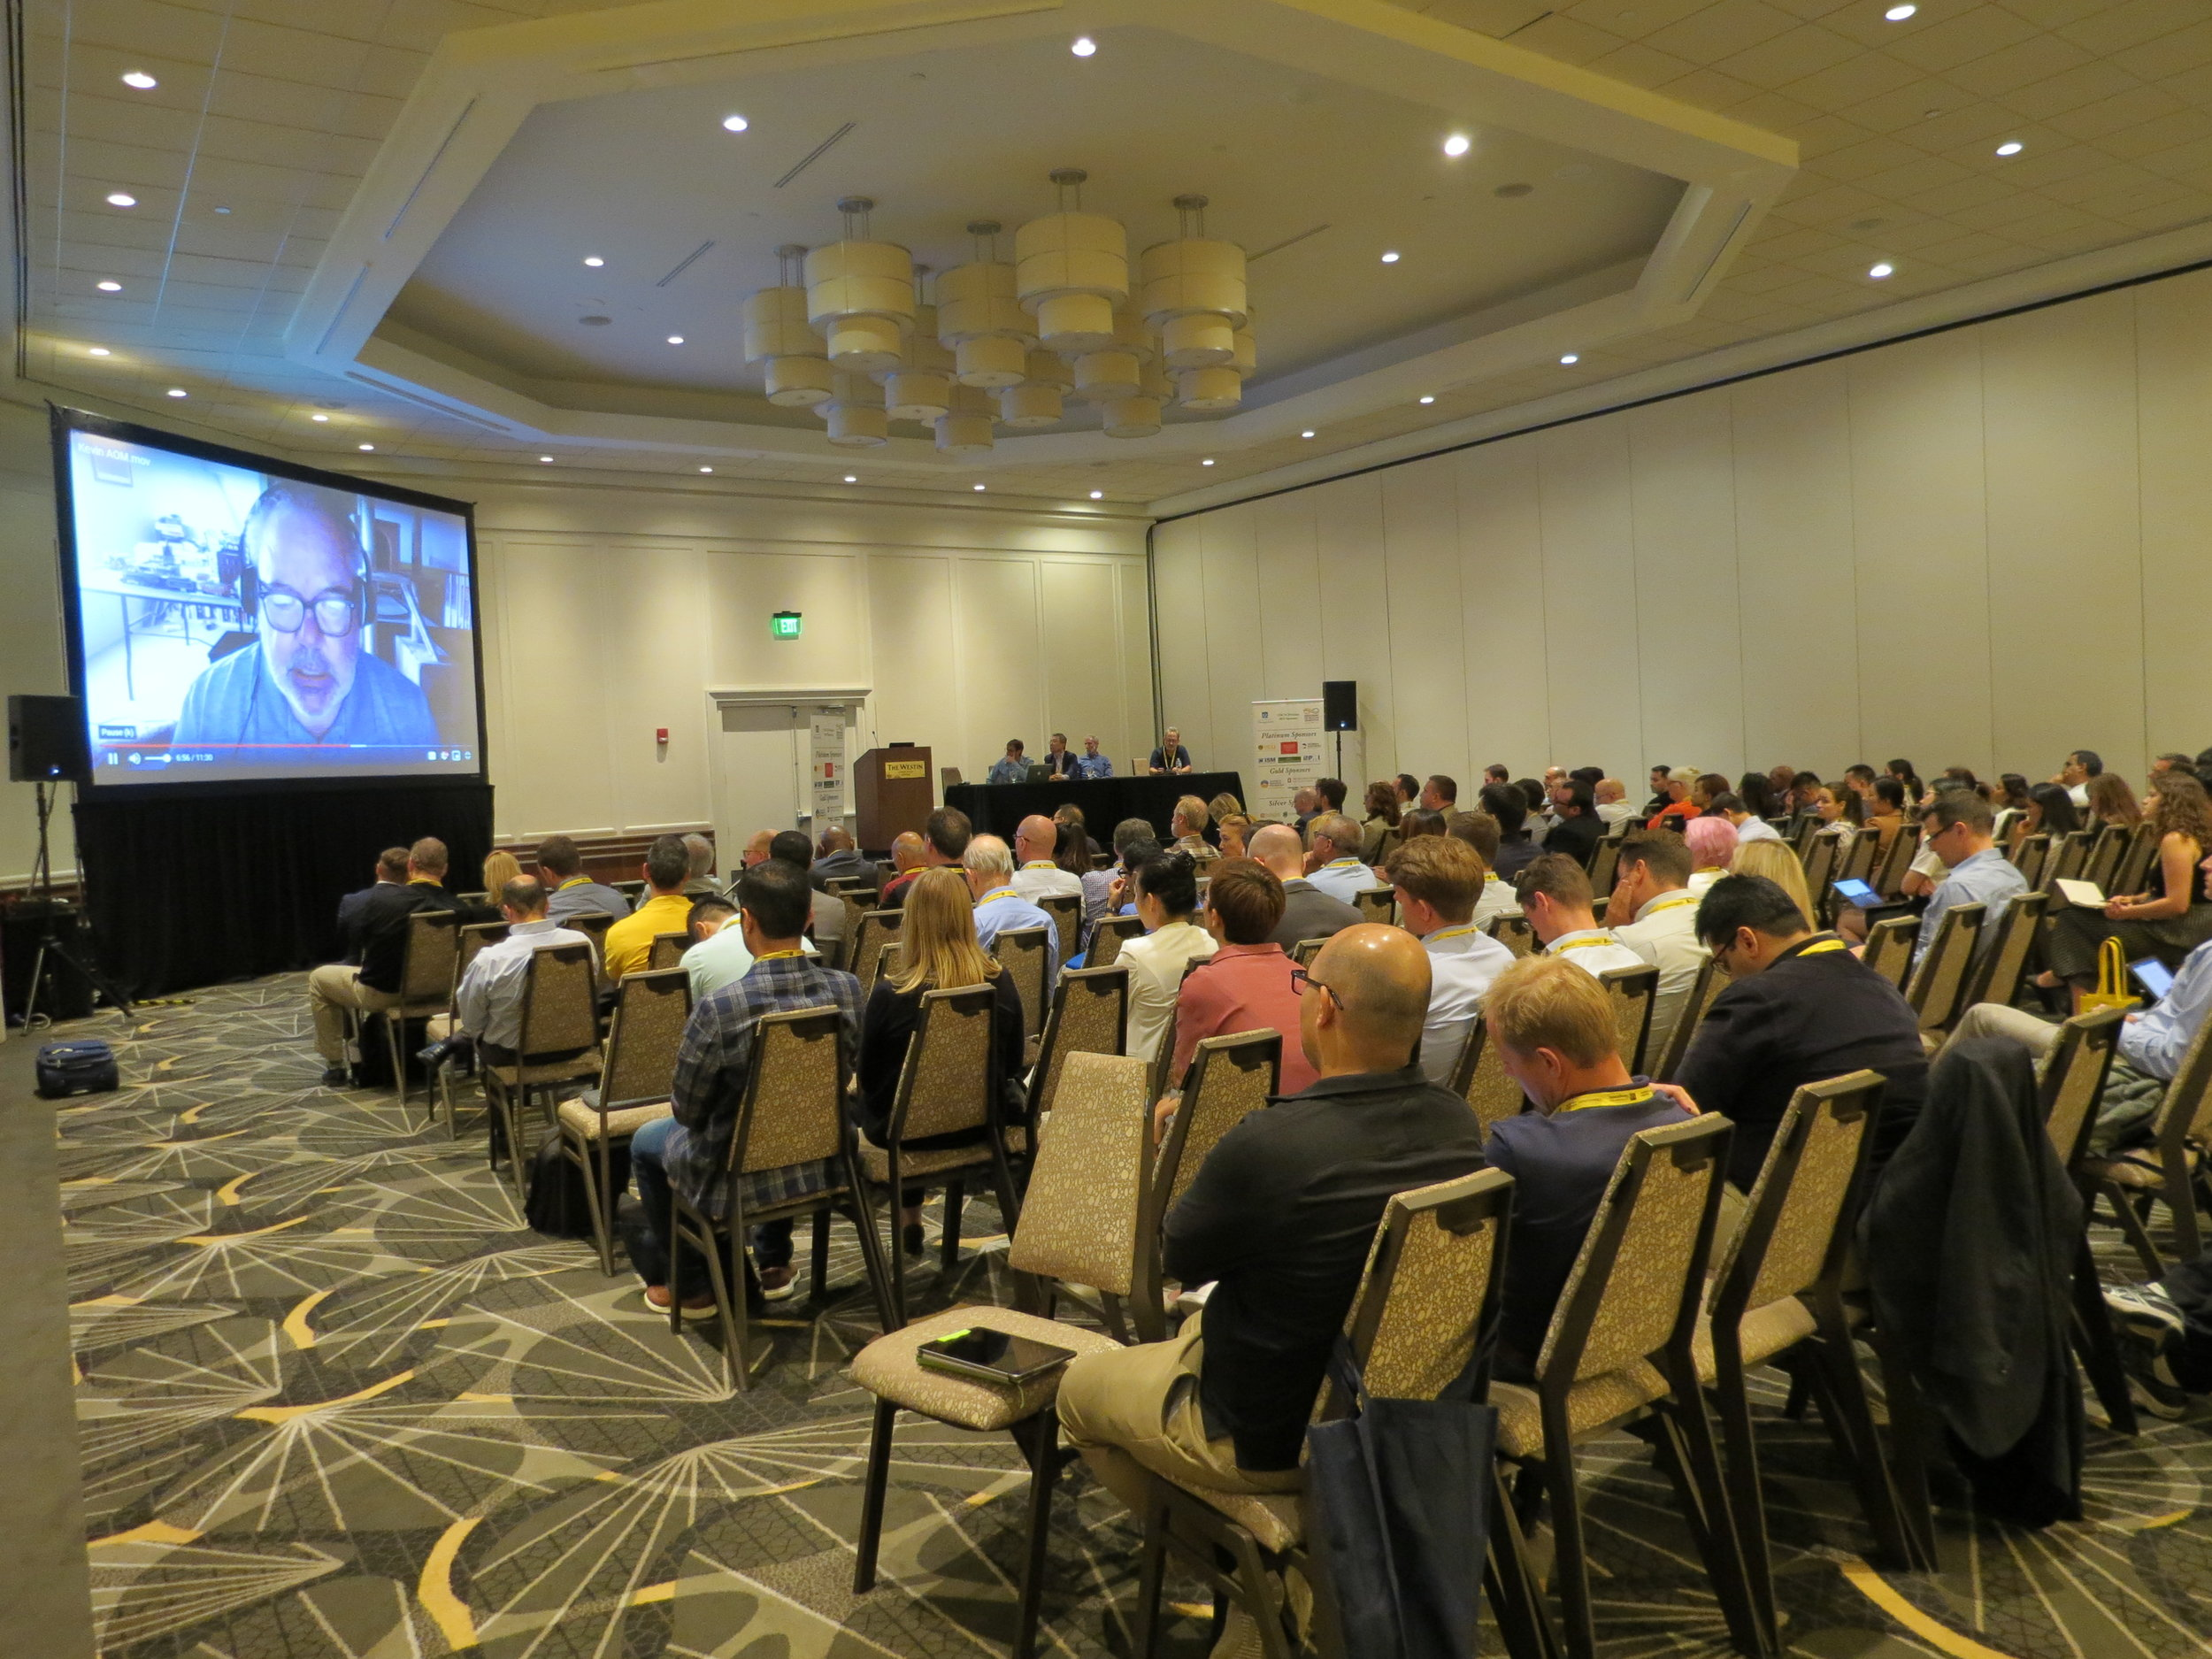 Our PDW audience during Kevin Dooleys presentation.